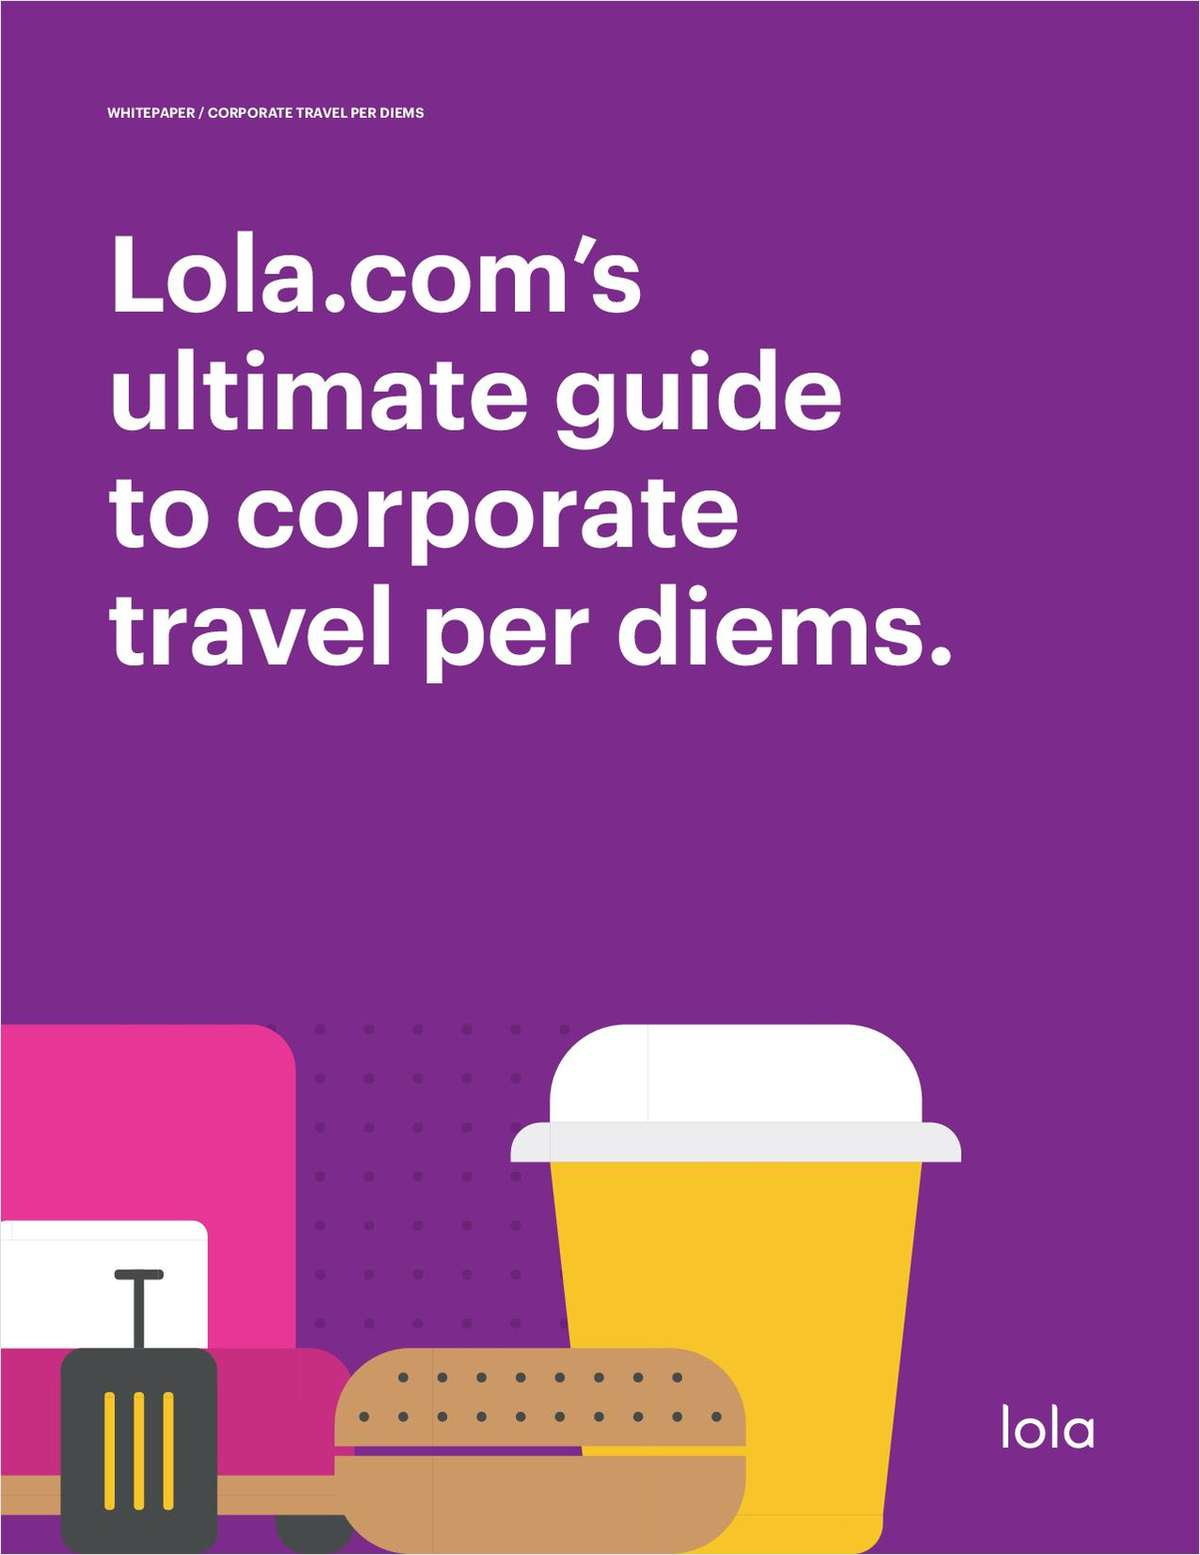 The Ultimate Guide to Corporate Travel Per Diems